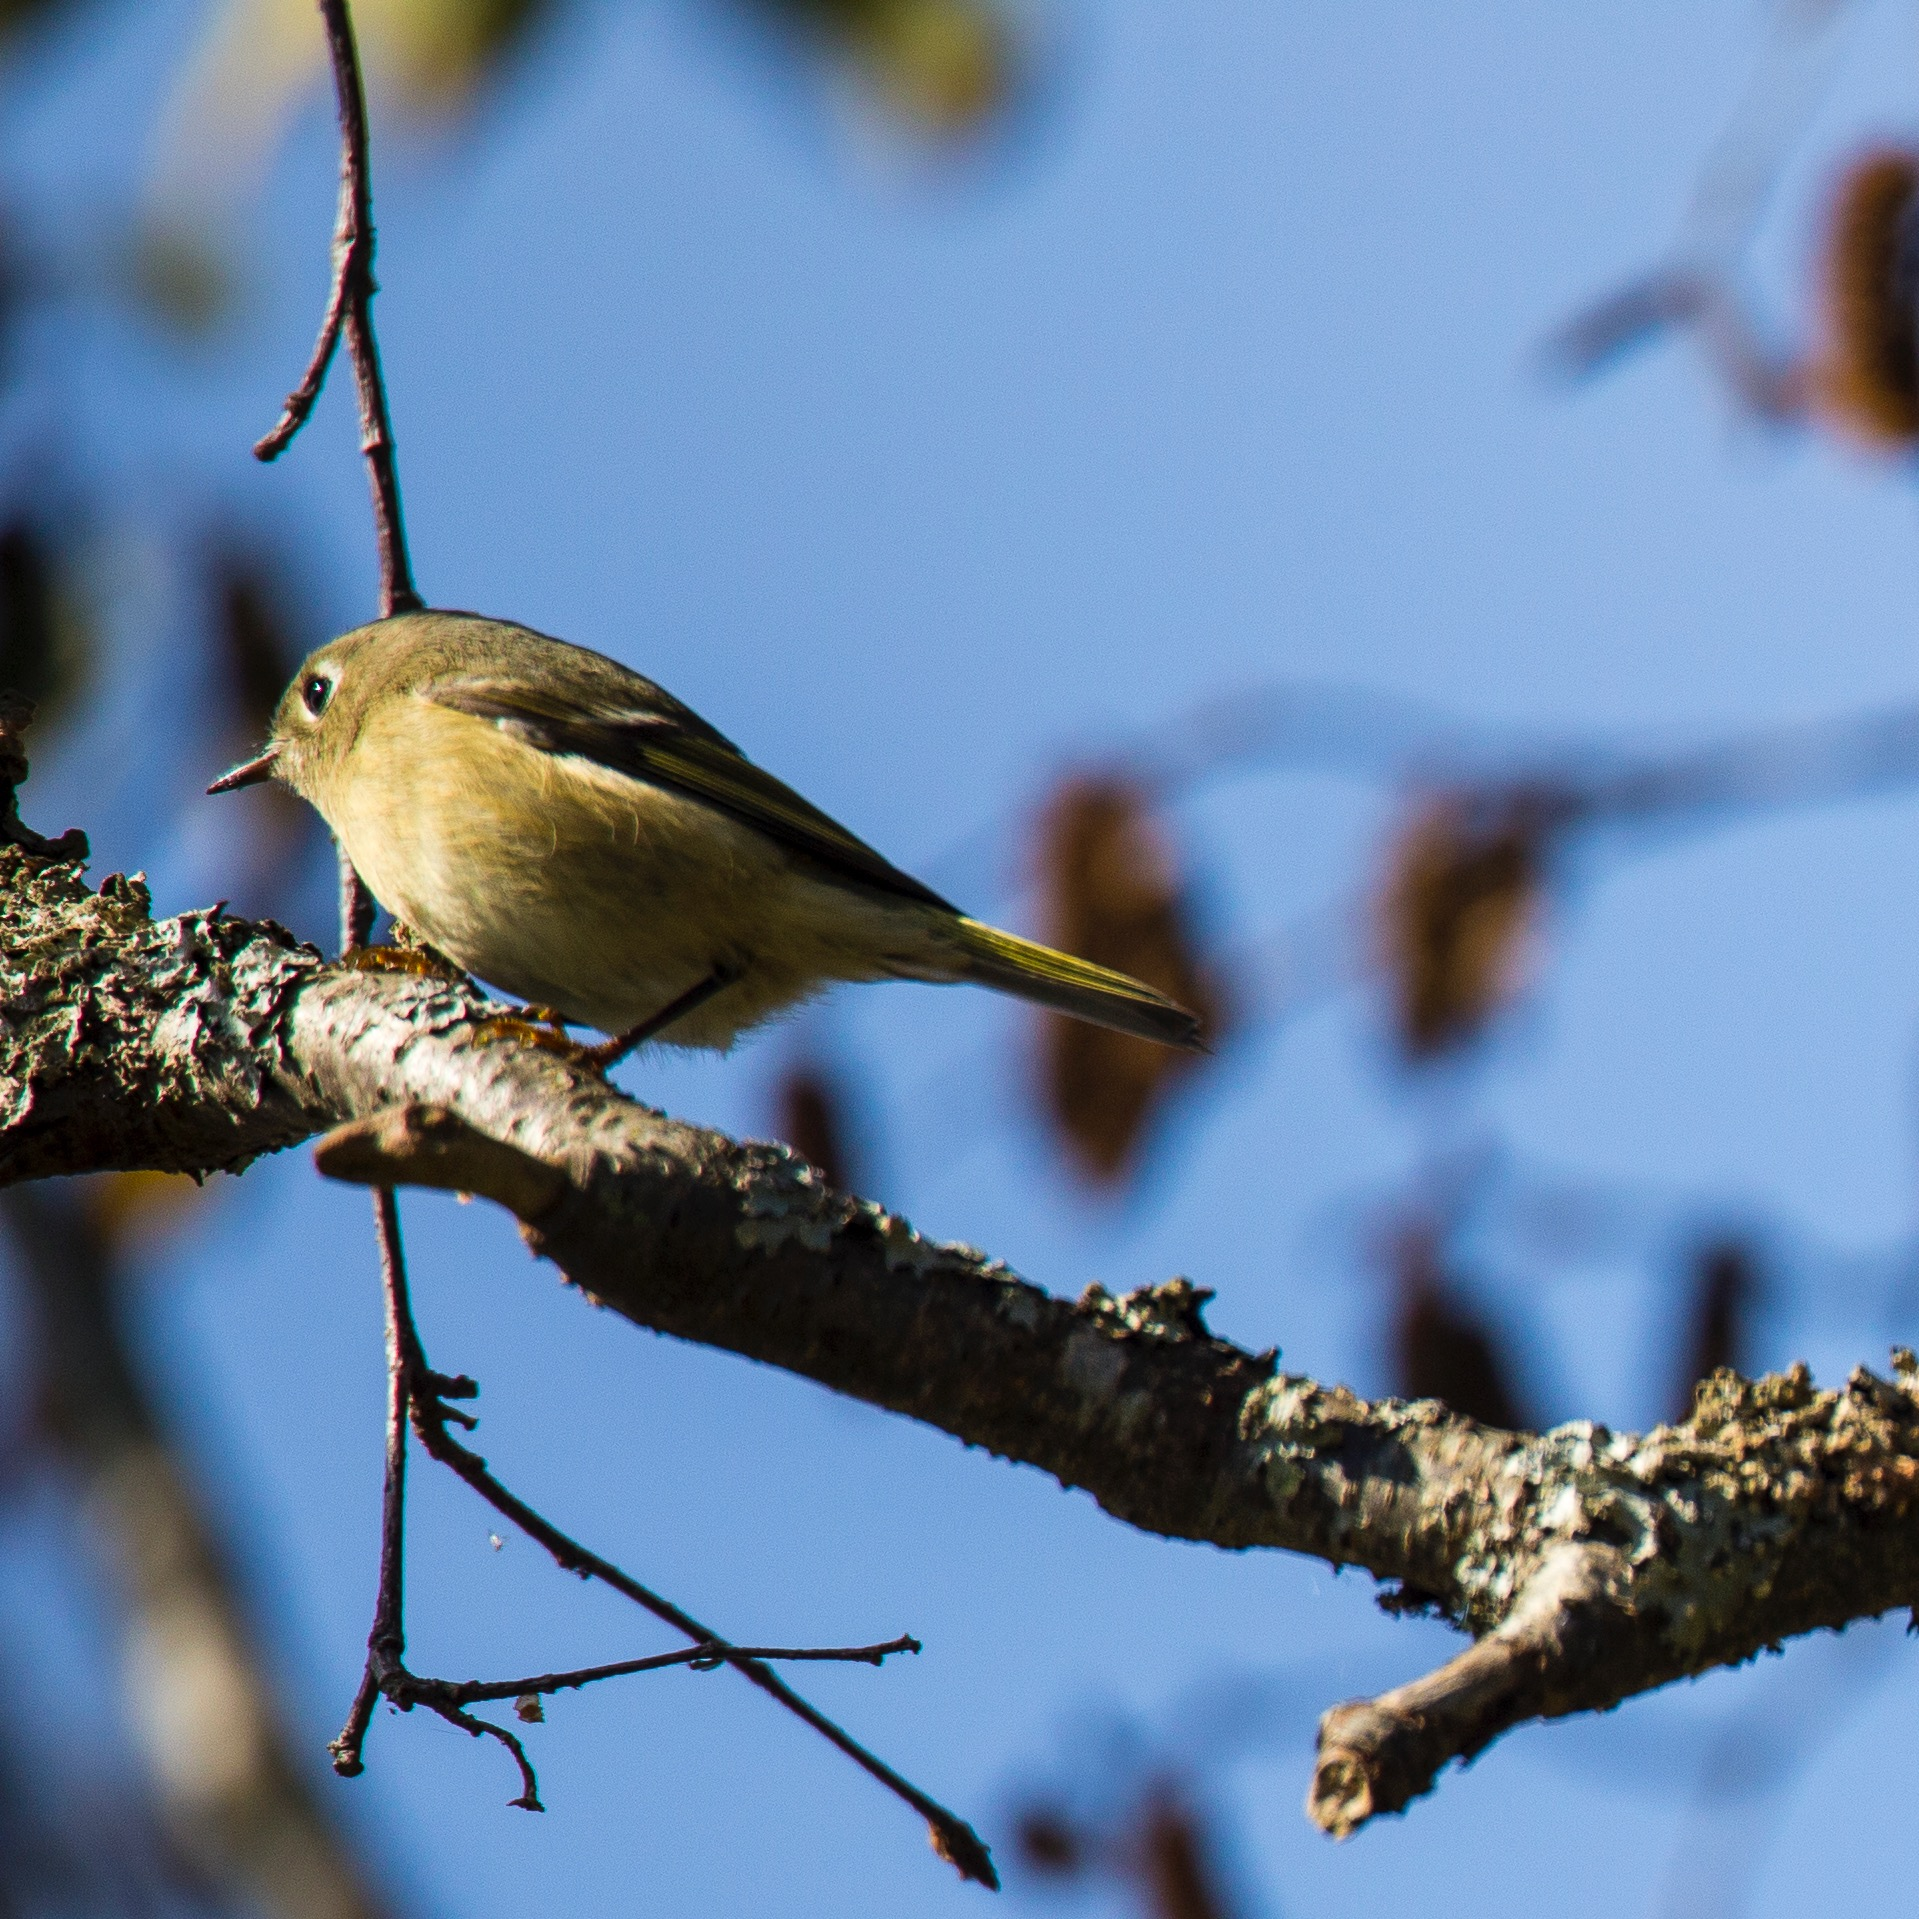 I think it's a Ruby-crowned Kinglet